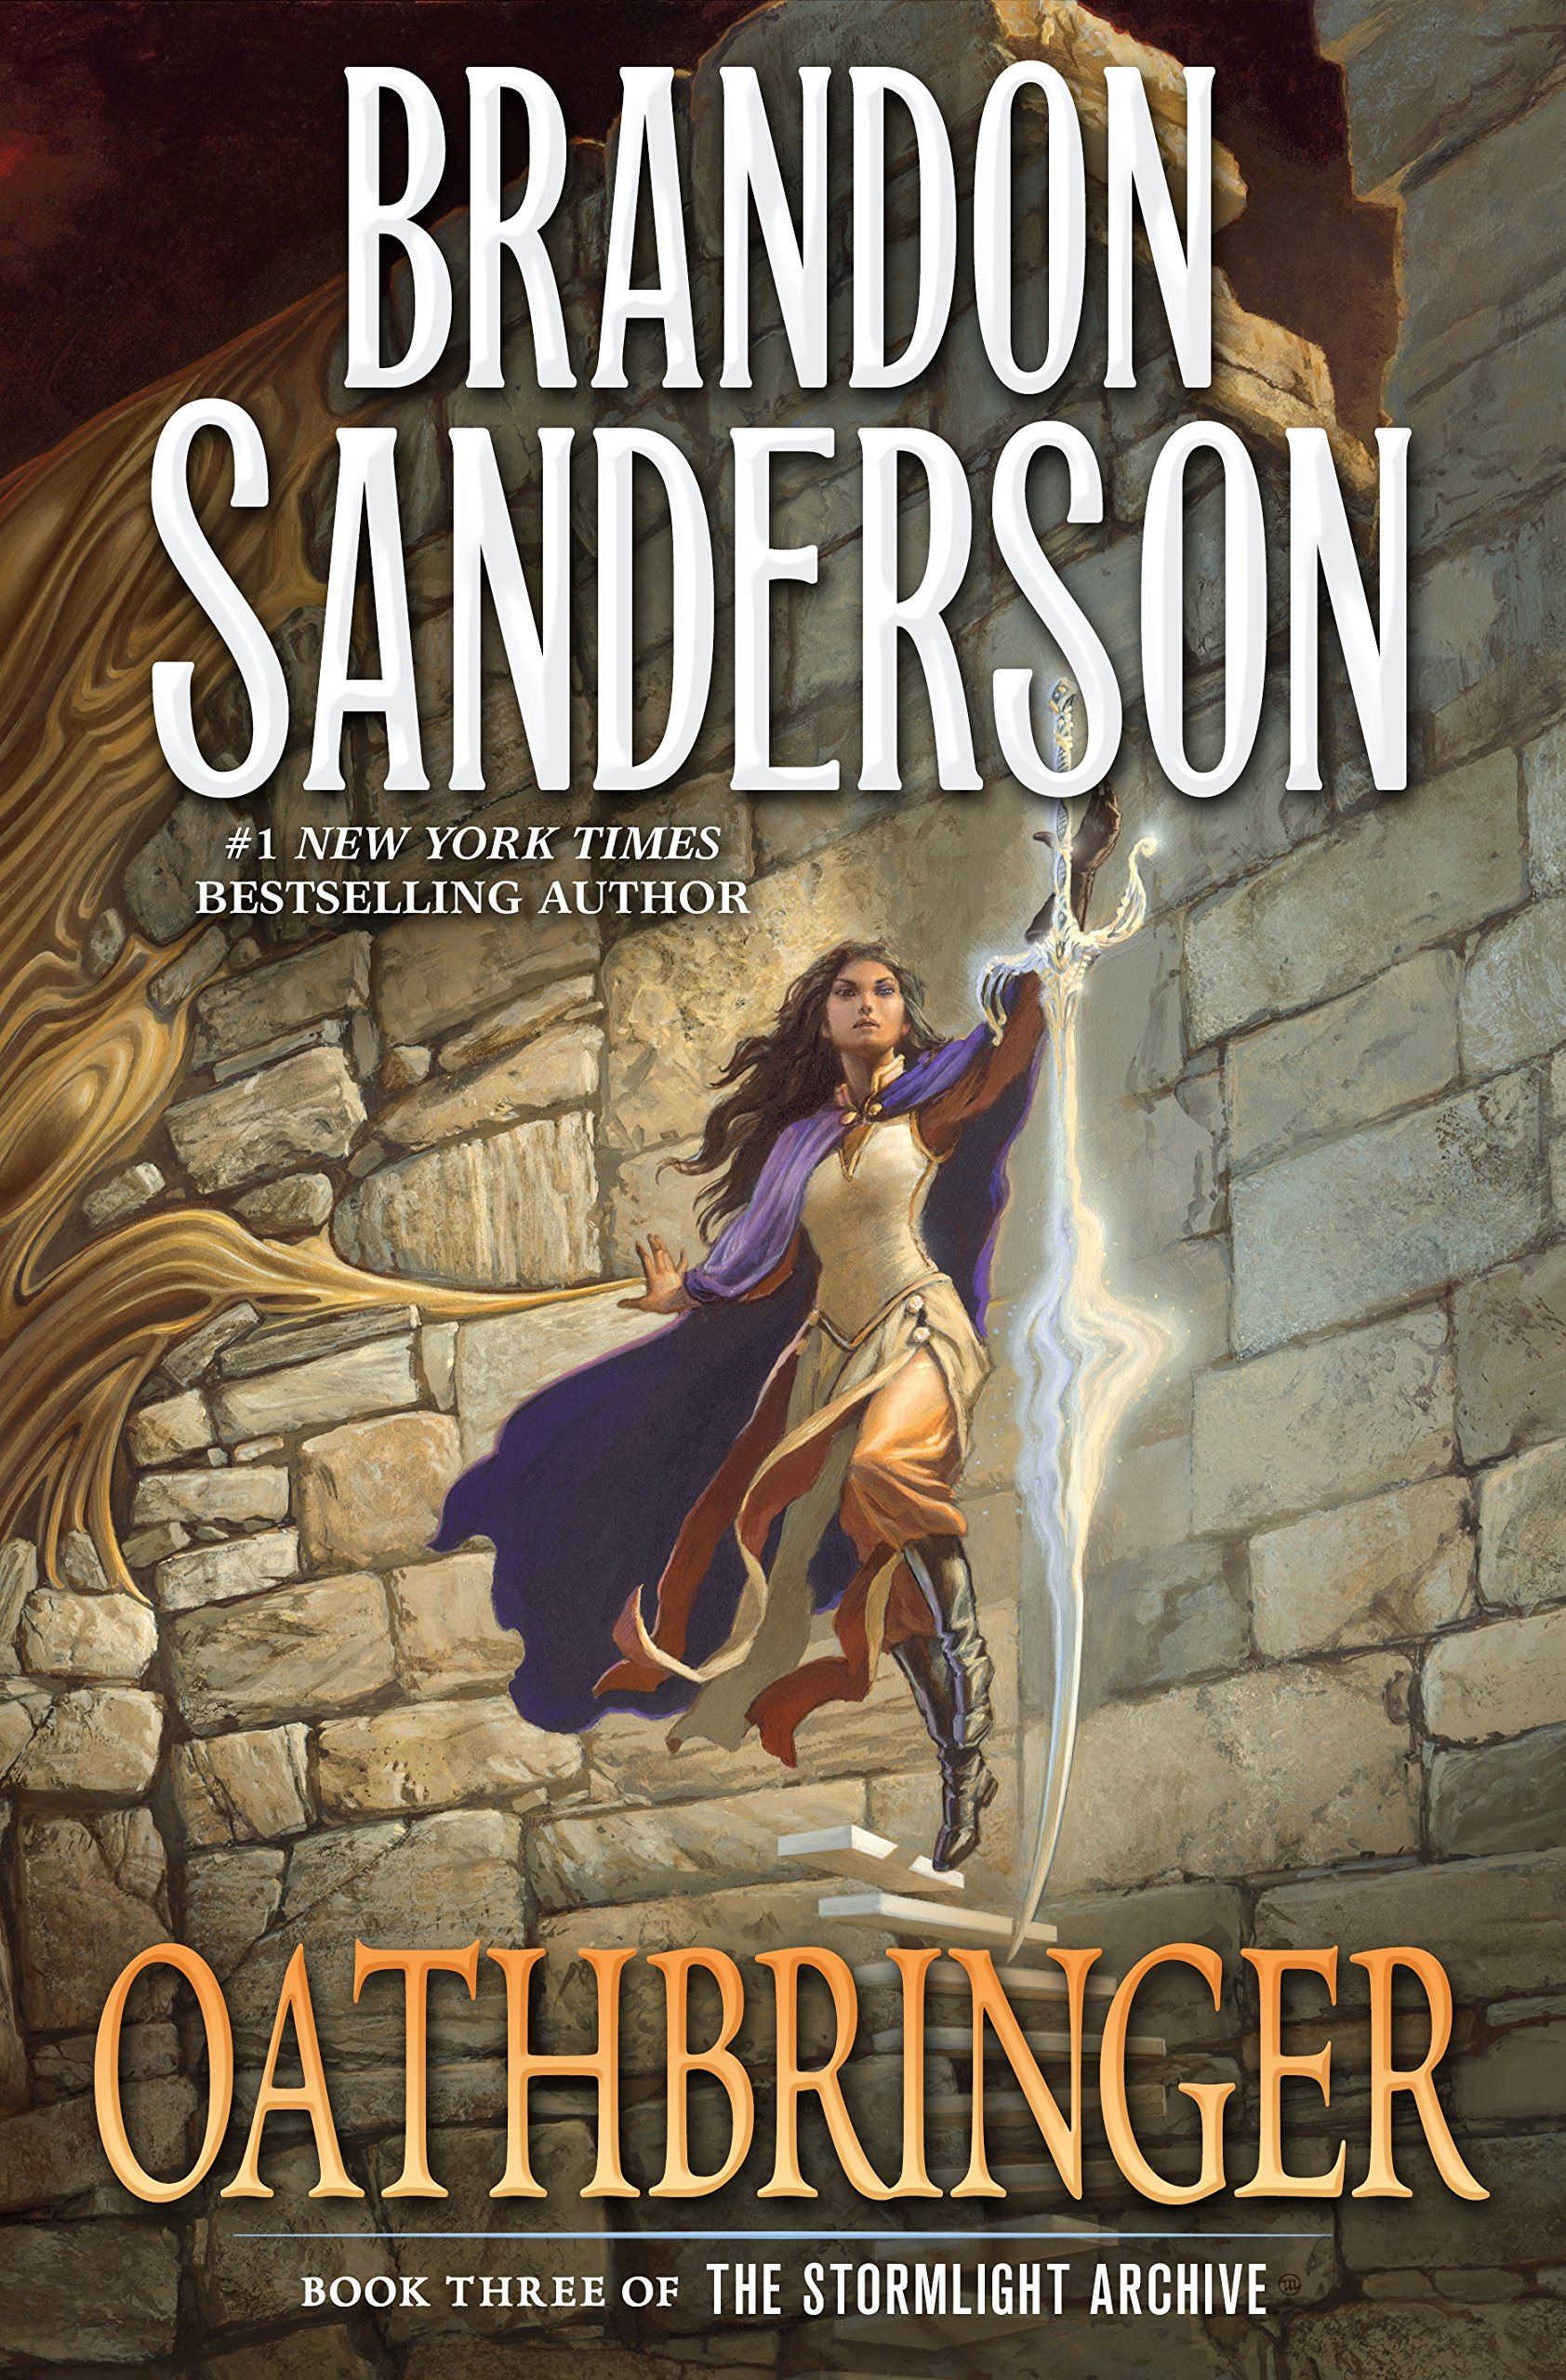 Download Pdf Epub Oathbringer The Stormlight Archive 3 By